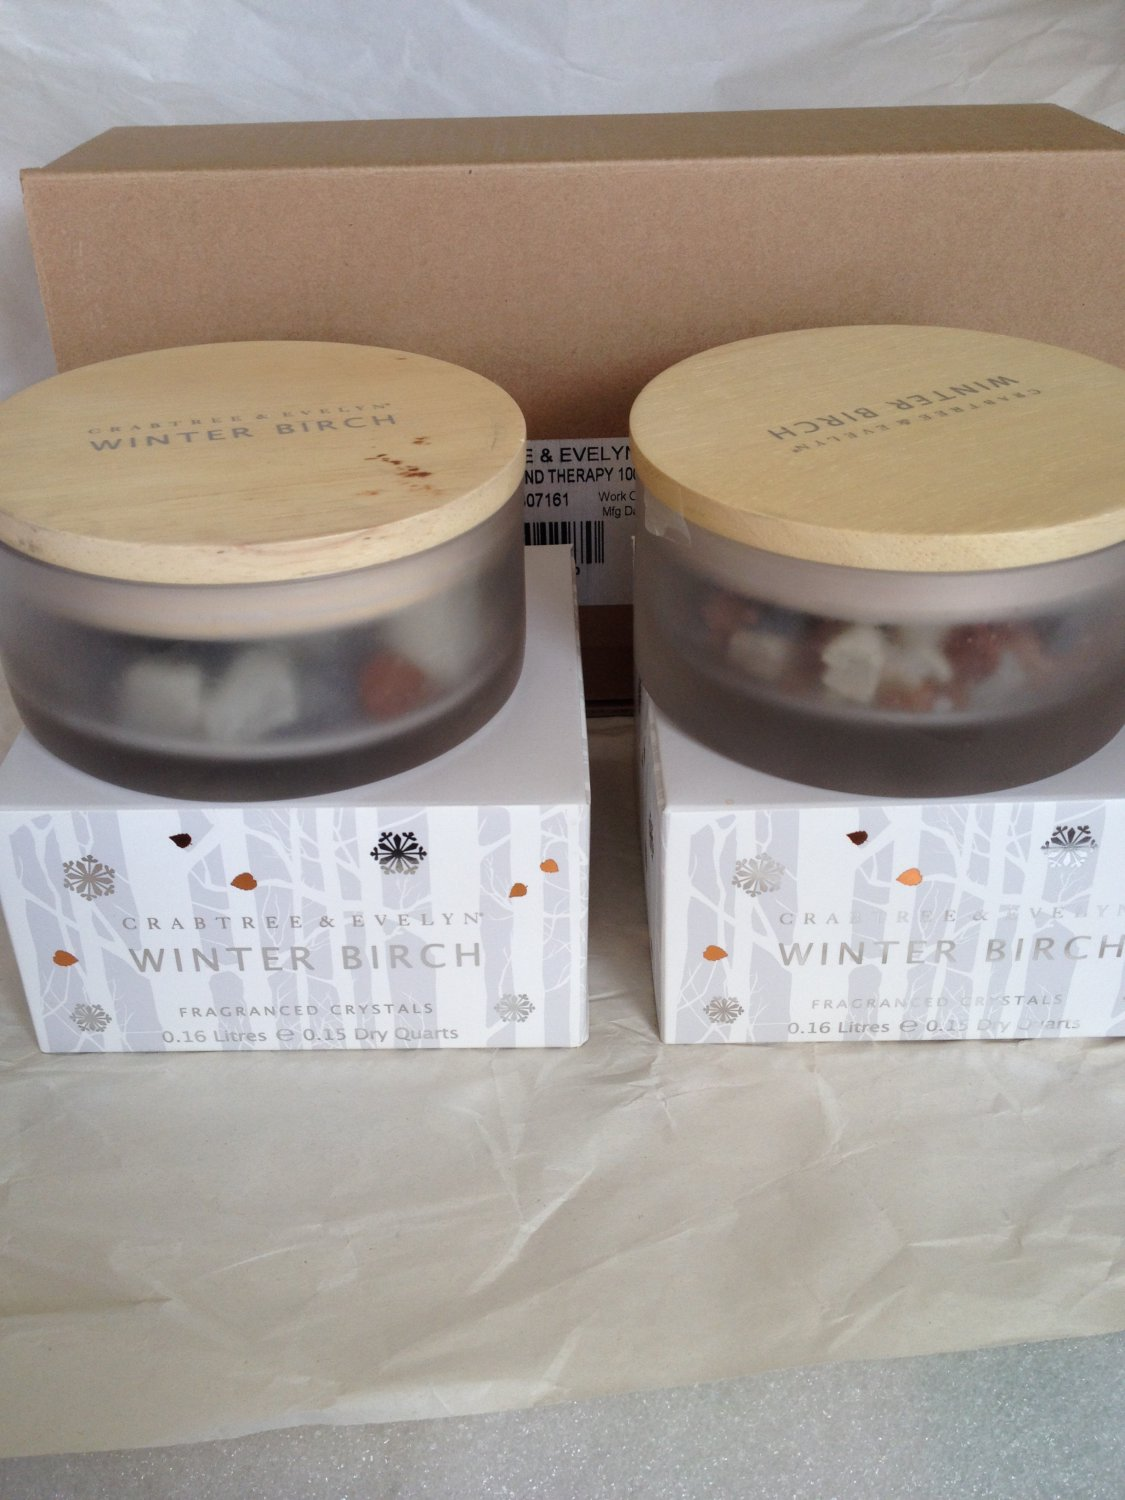 Crabtree Evelyn Winter Birch Scented Crystal Potpourri X2. FS Home Fragrance rocks Disc'd